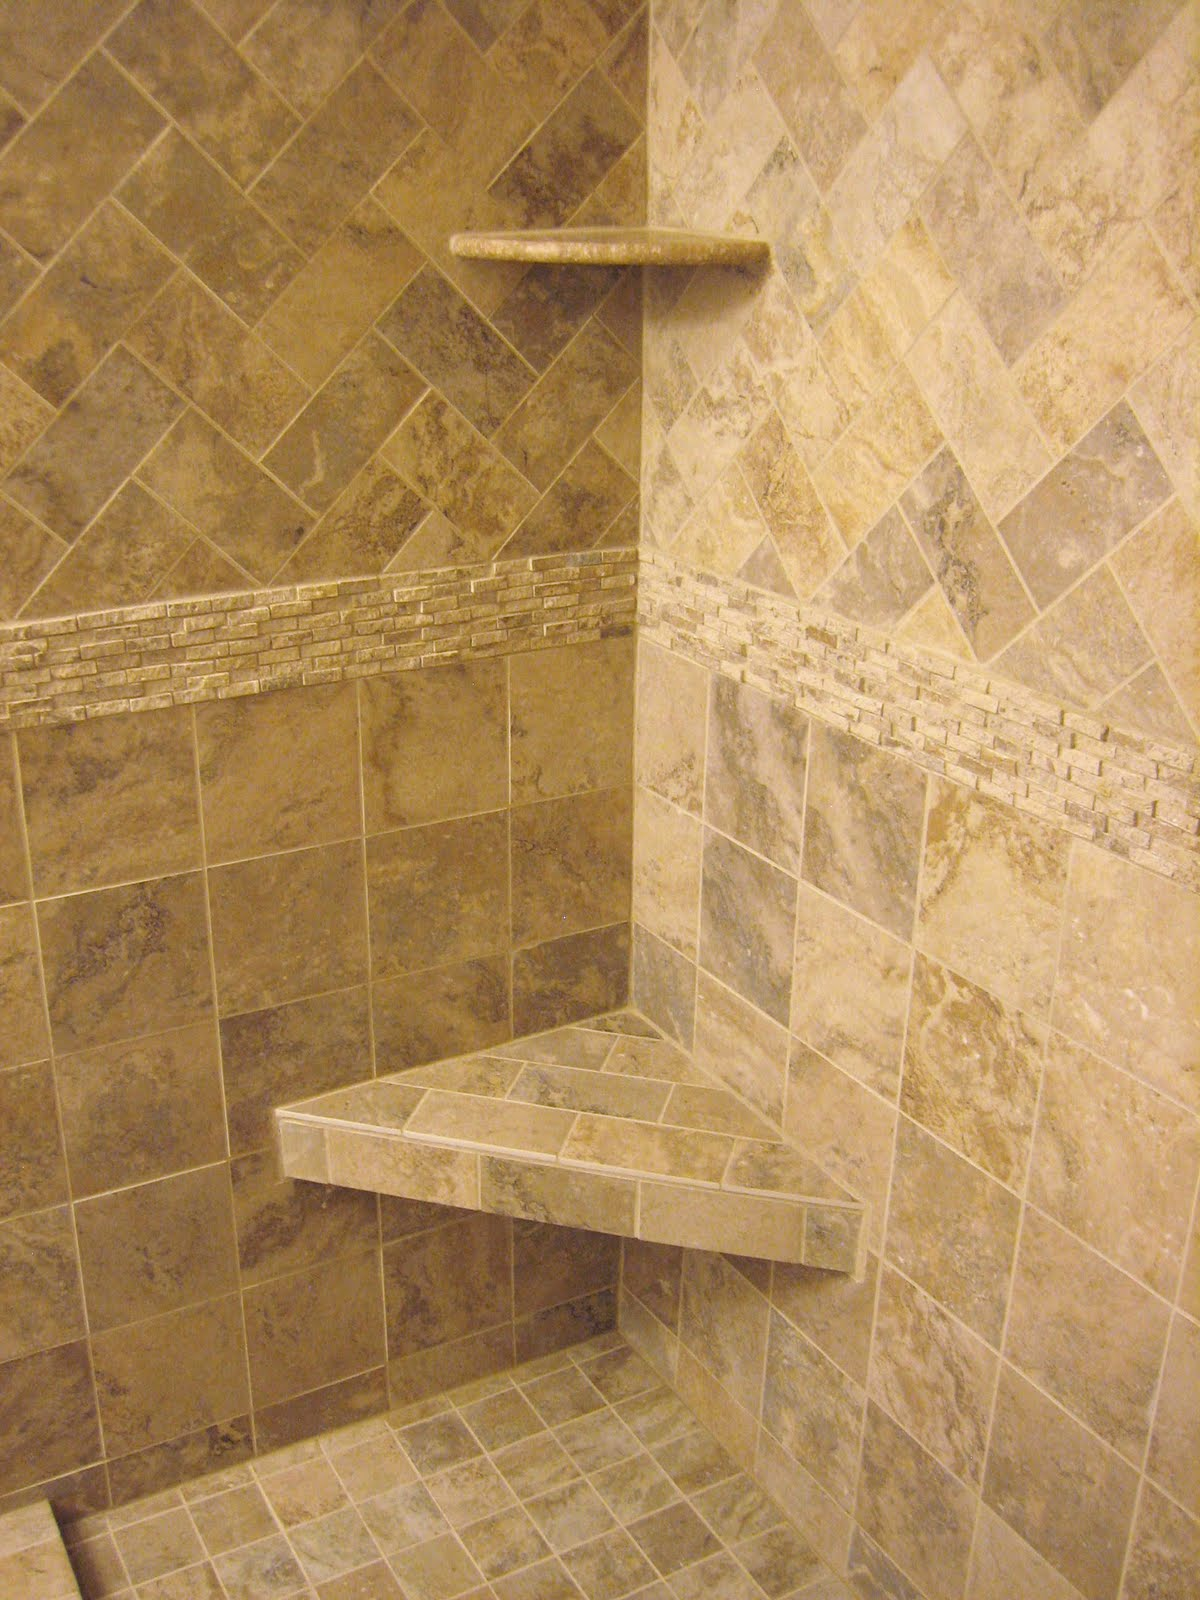 H winter showroom blog luxury master bath remodel athena for Tile designs for bathroom